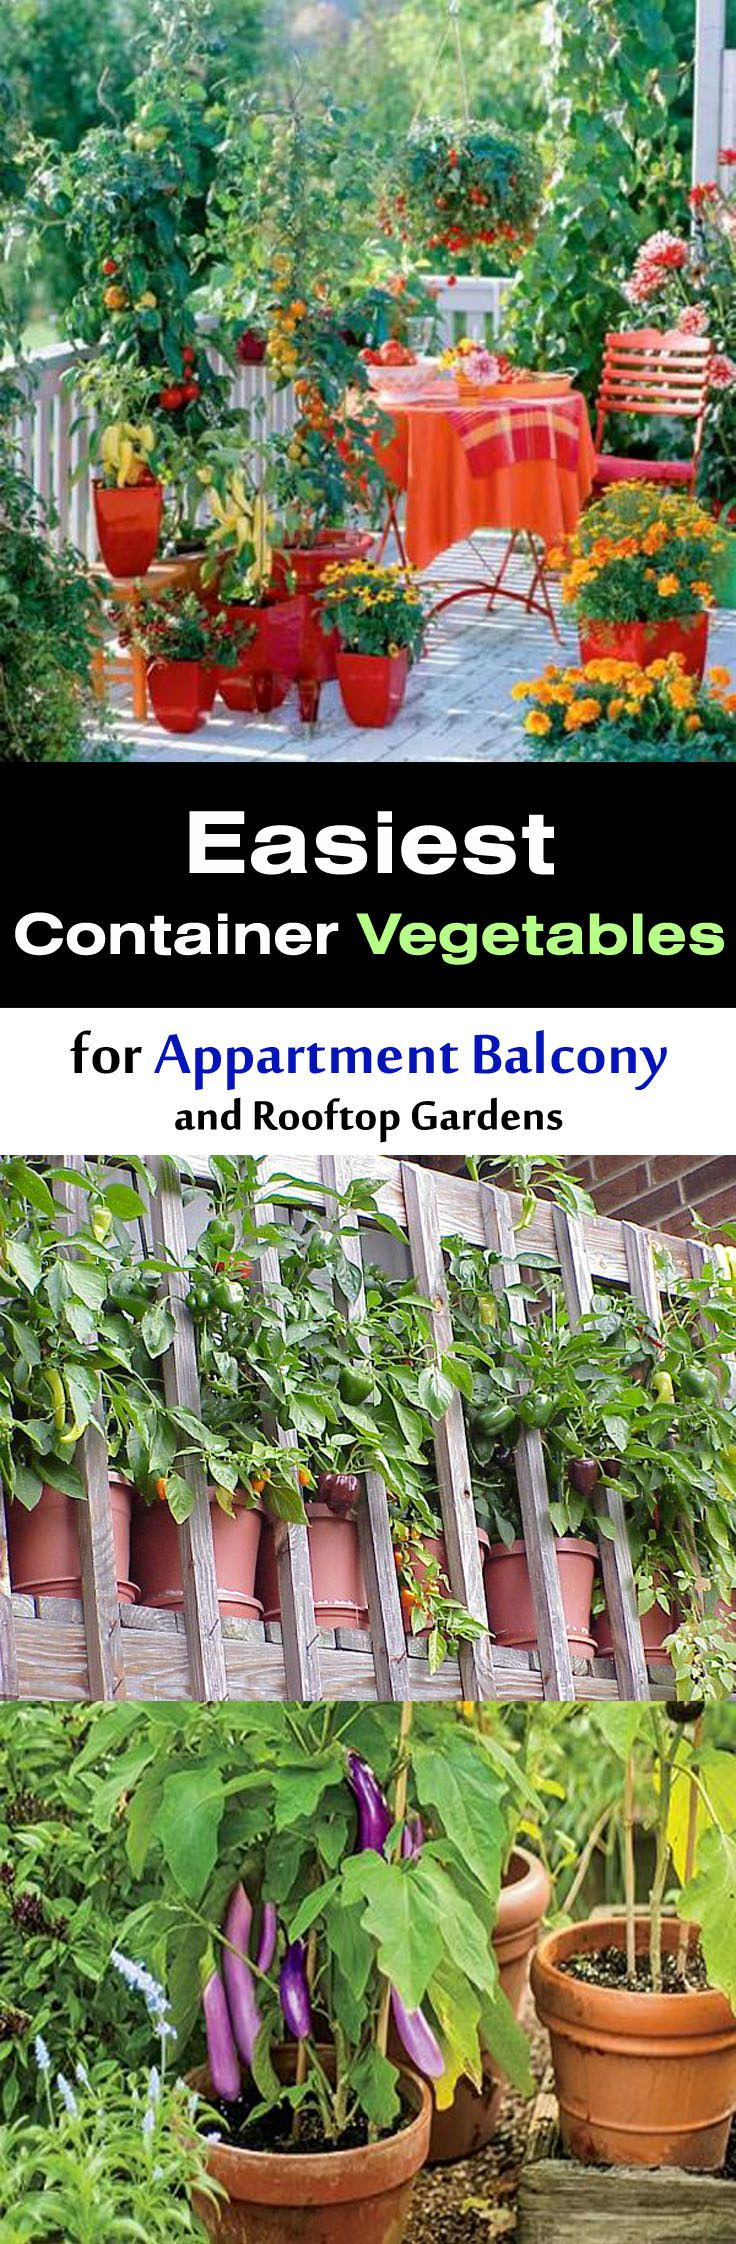 Container ve able gardening allows you to cultivate edibles in smallest of spaces and in this article